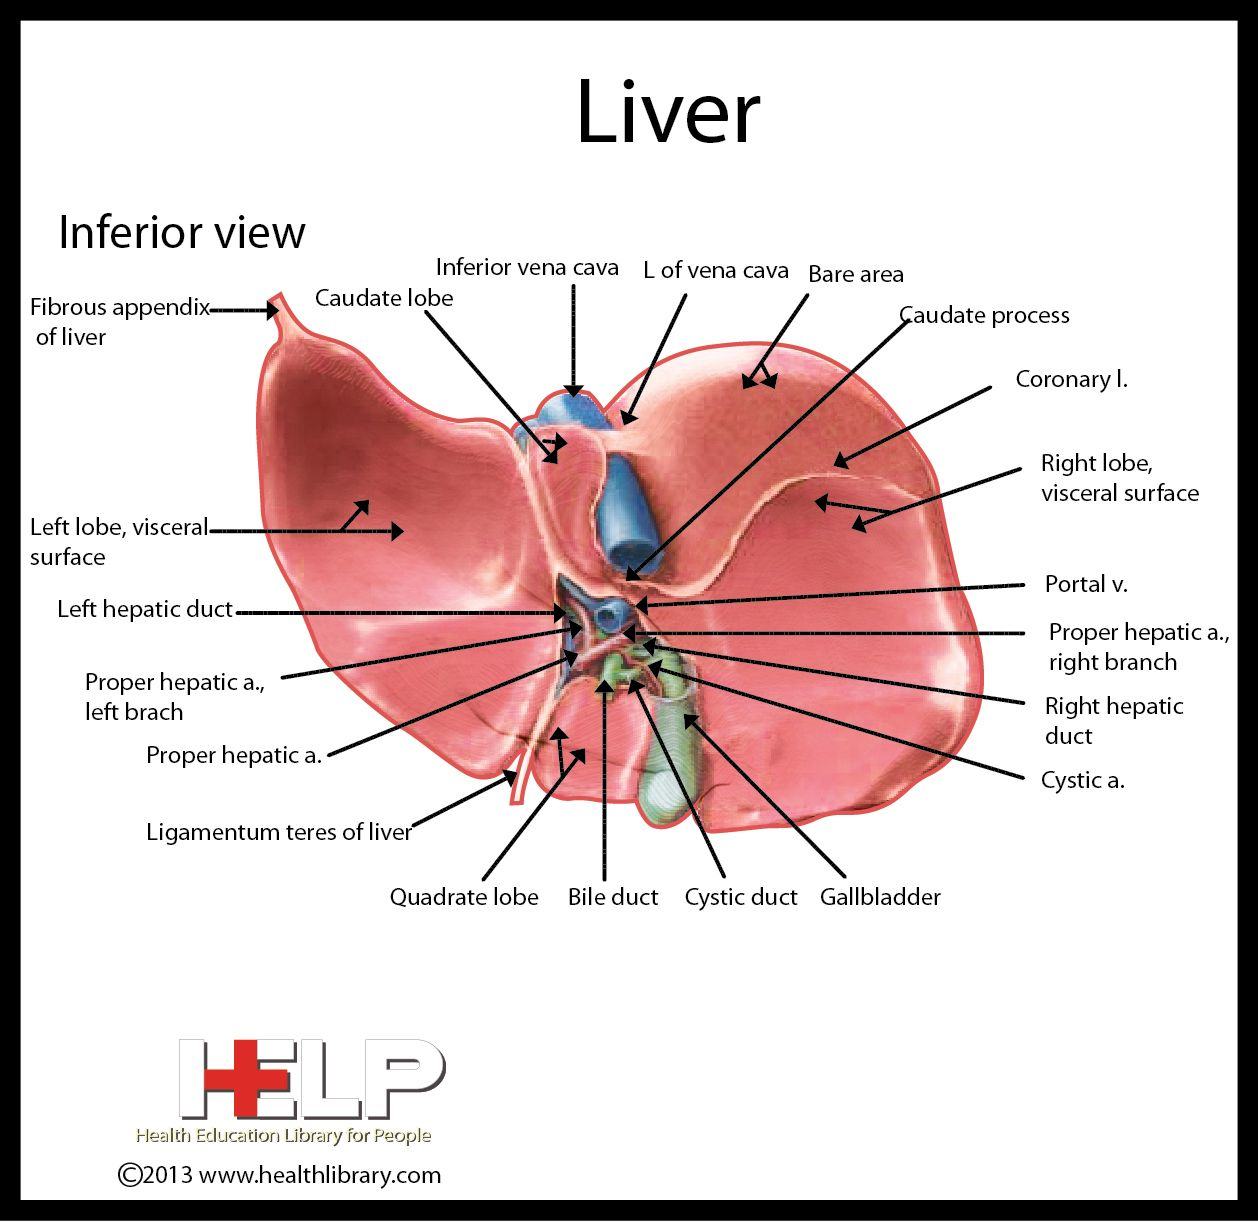 Pin by Patient Education on Liver | Pinterest